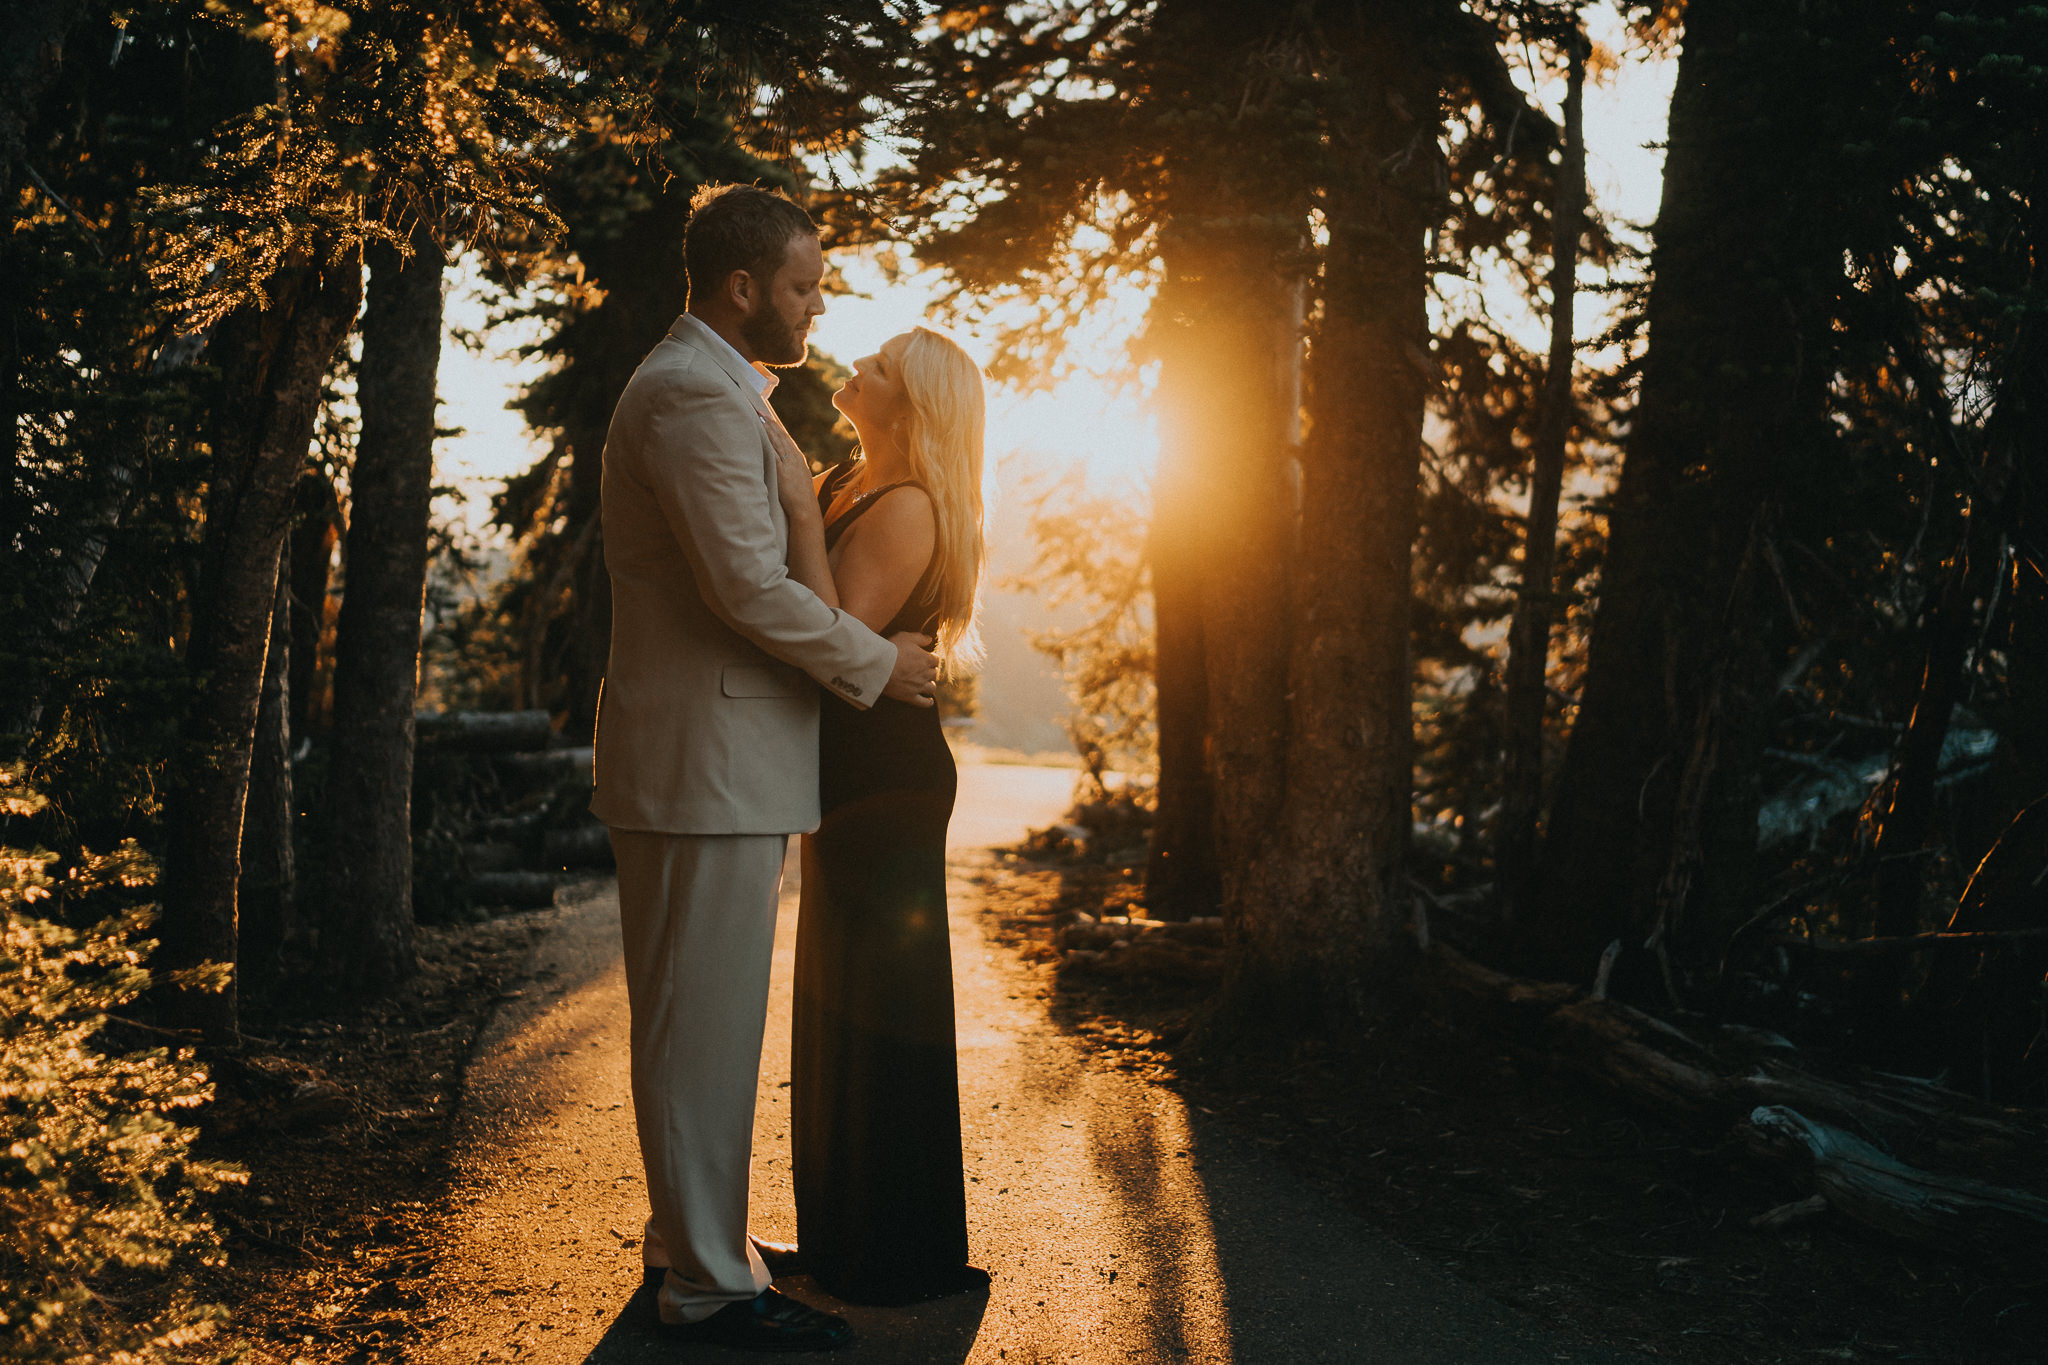 Sun-Lens-Flare-Engagement-Photographer-Alfred-Tang